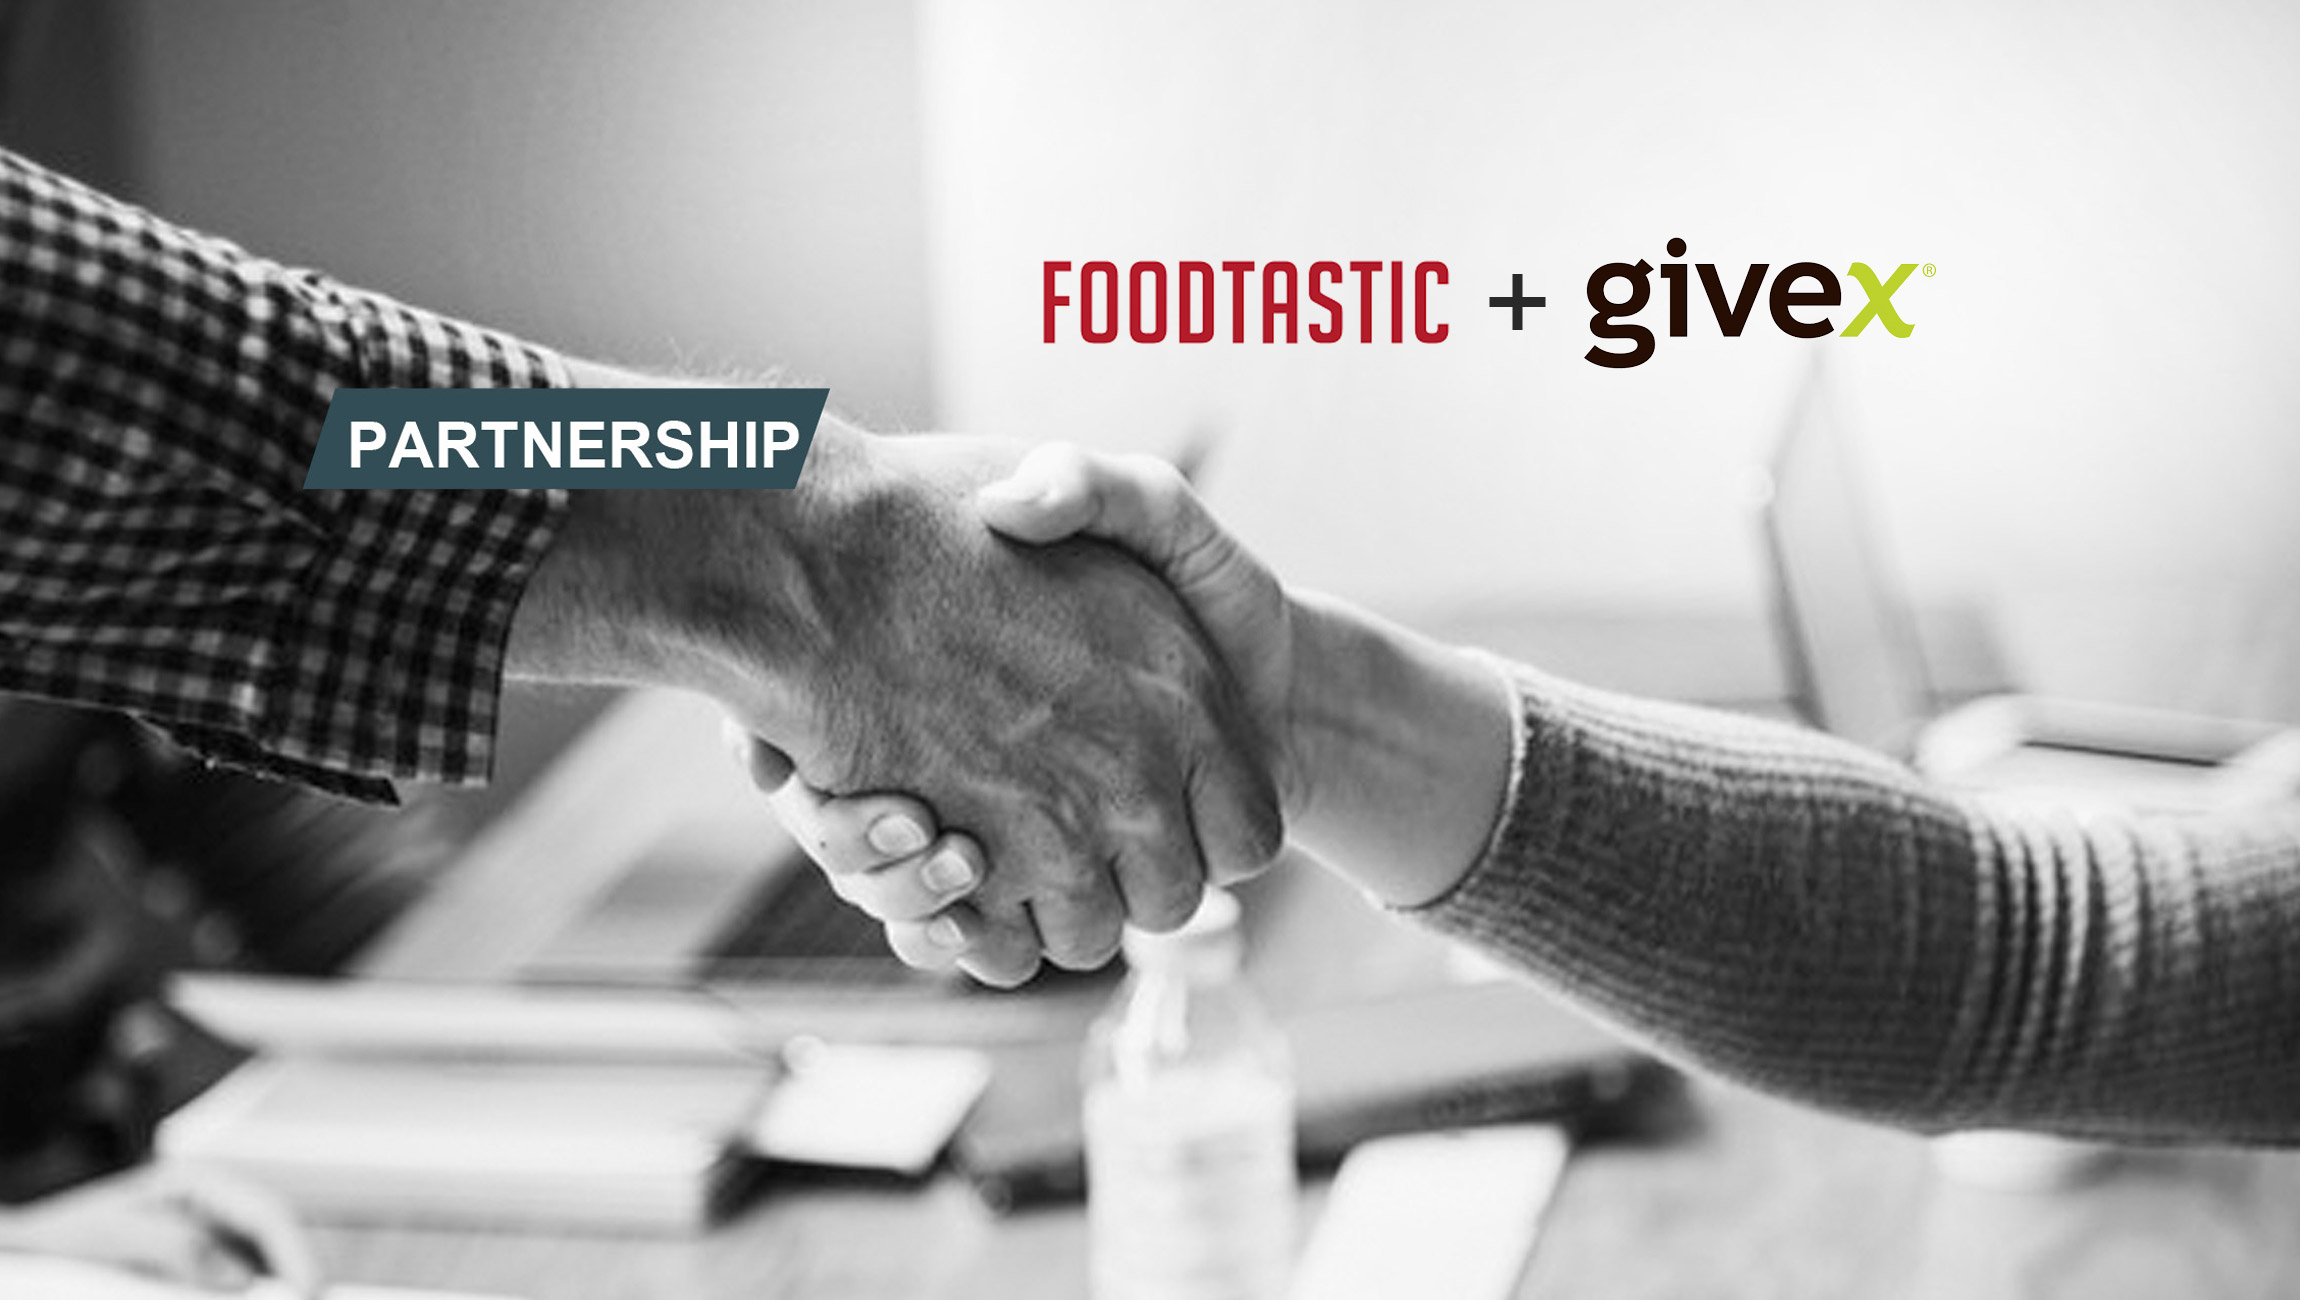 Foodtastic-Announces-Partnership-with-Givex-as-Part-of-Growth-Strategy-For-its-650_-Restaurants